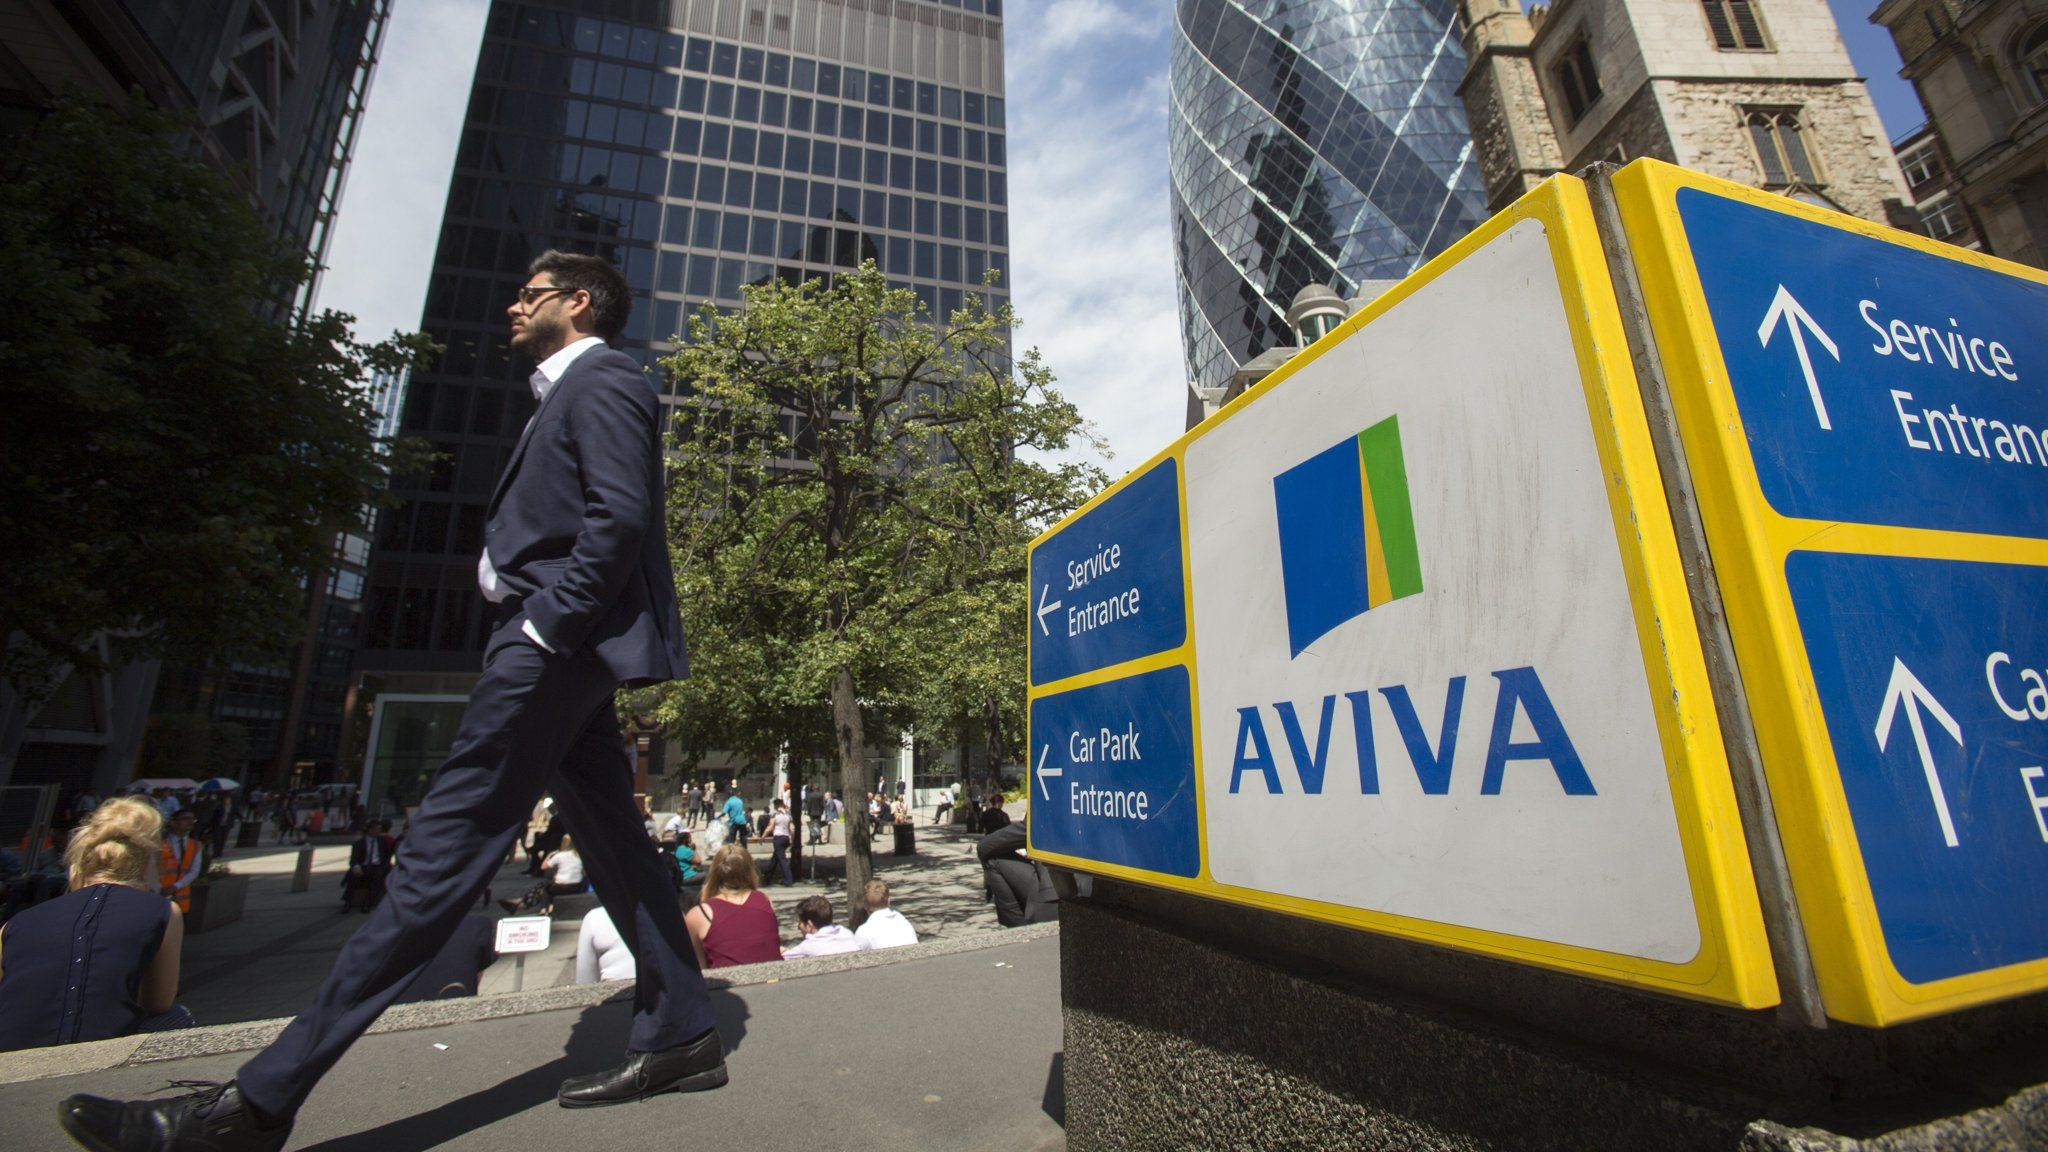 Life Insurance Quote Uk Aviva Life Insurance Is A Uk Based Service Which Specializes In